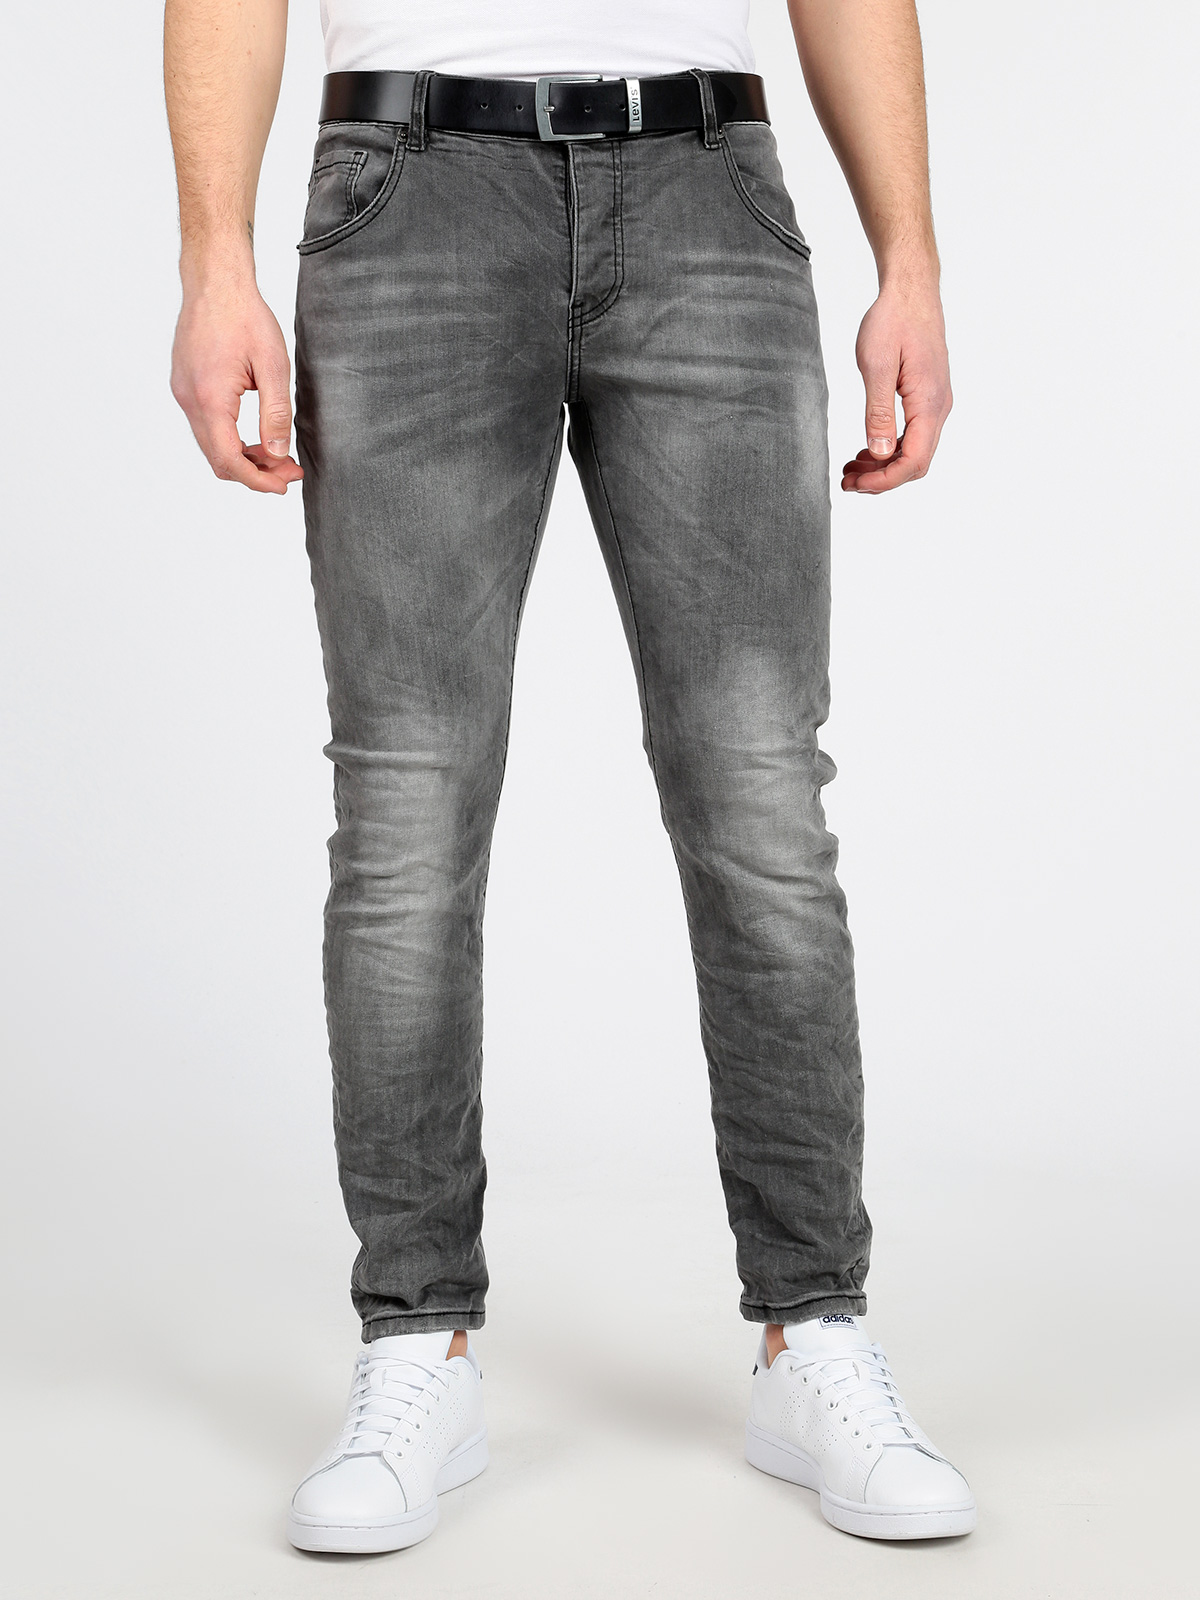 Gray Jeans Effect Washed